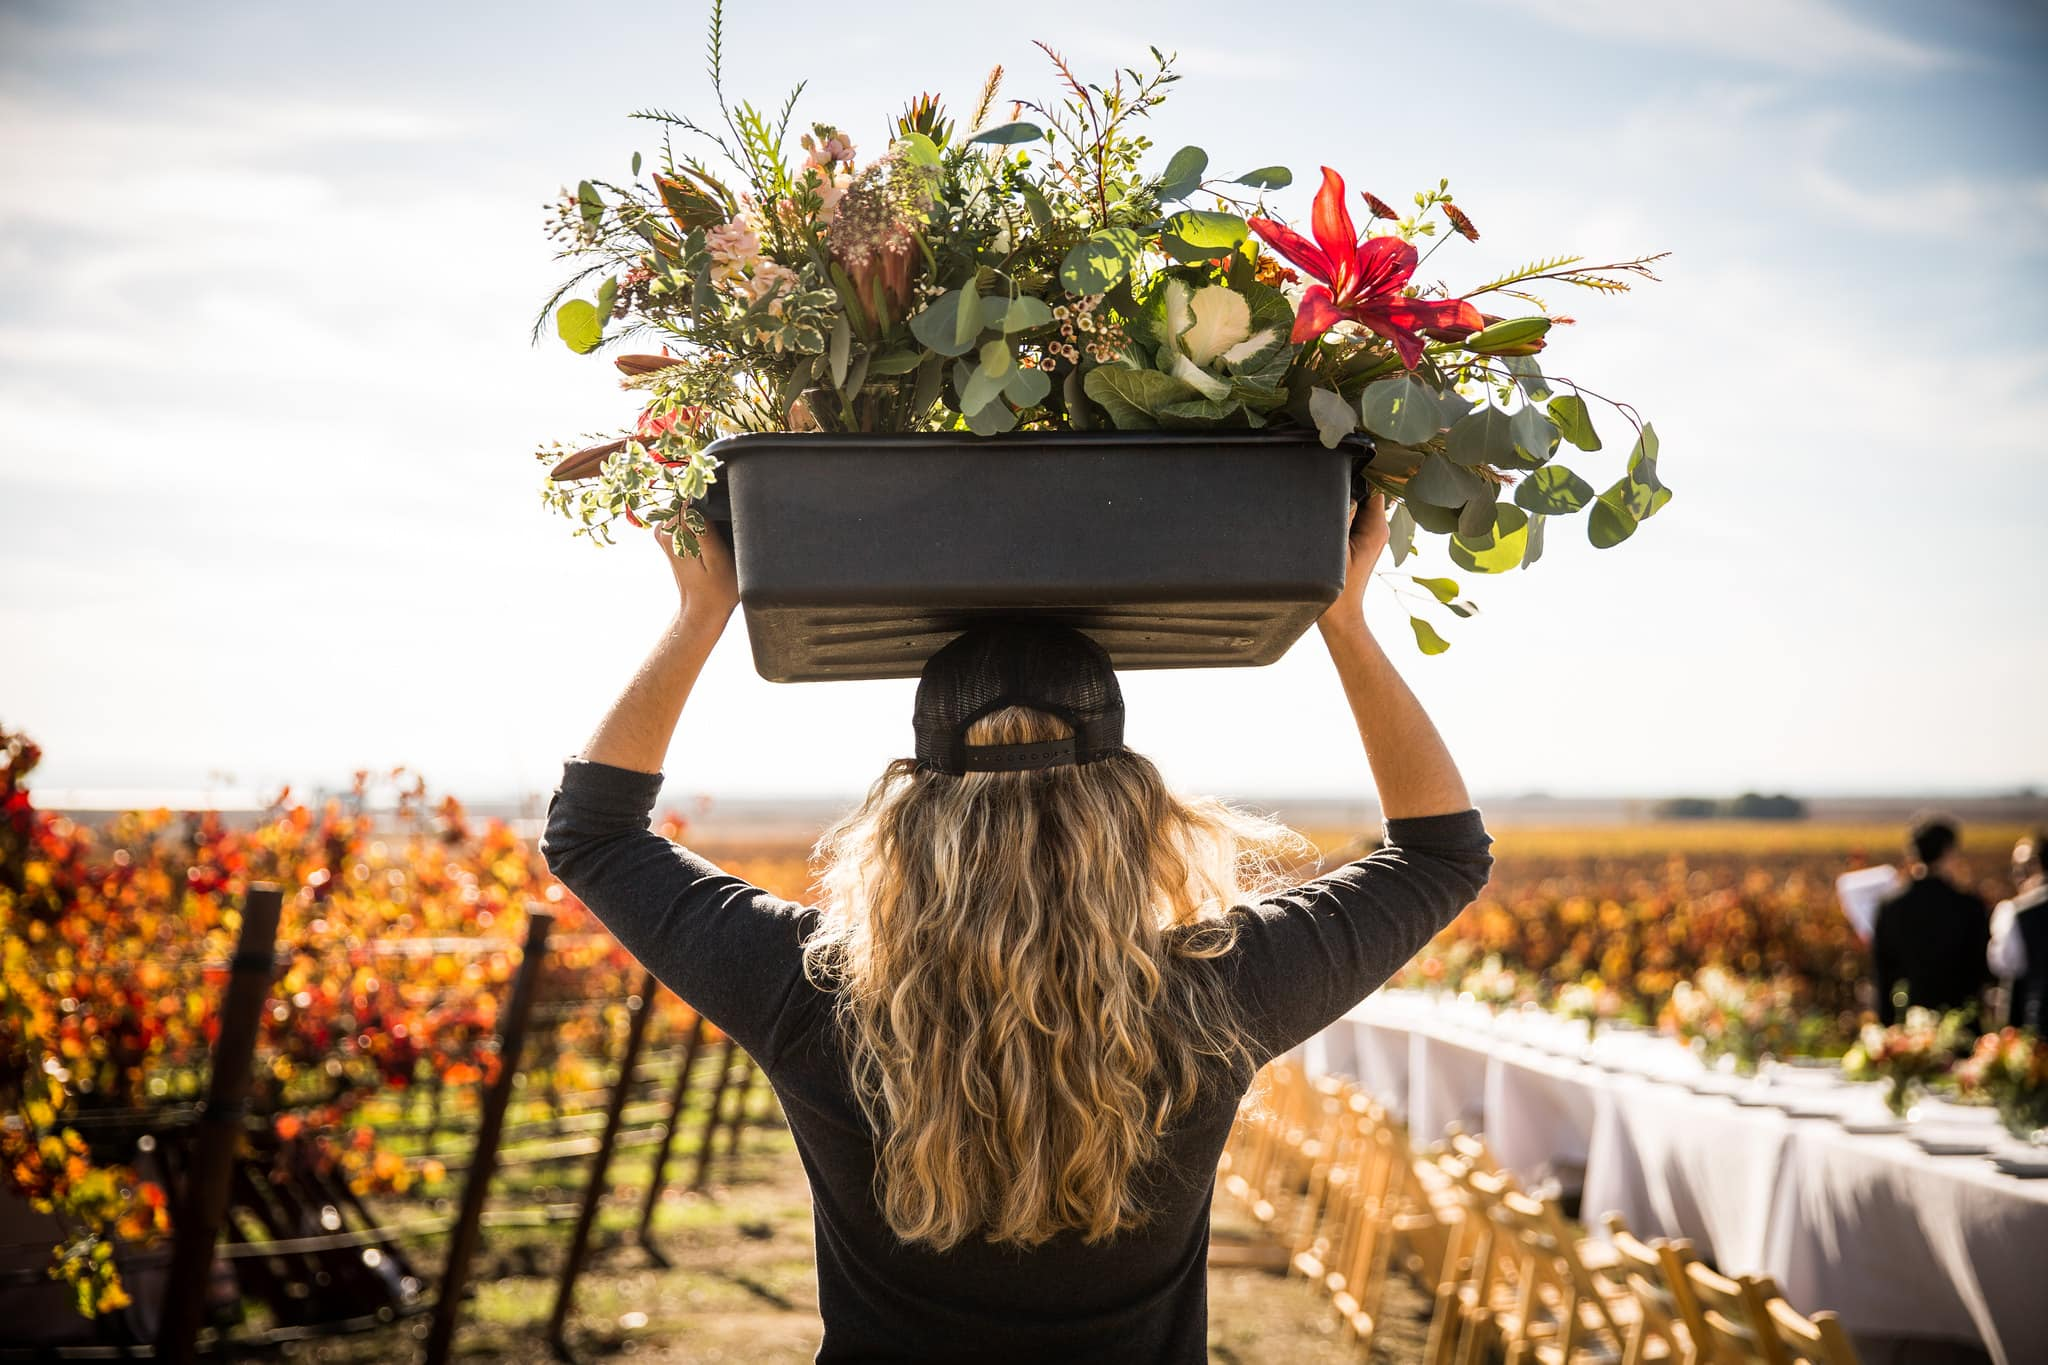 Woman carry away a bucket full of flowers.